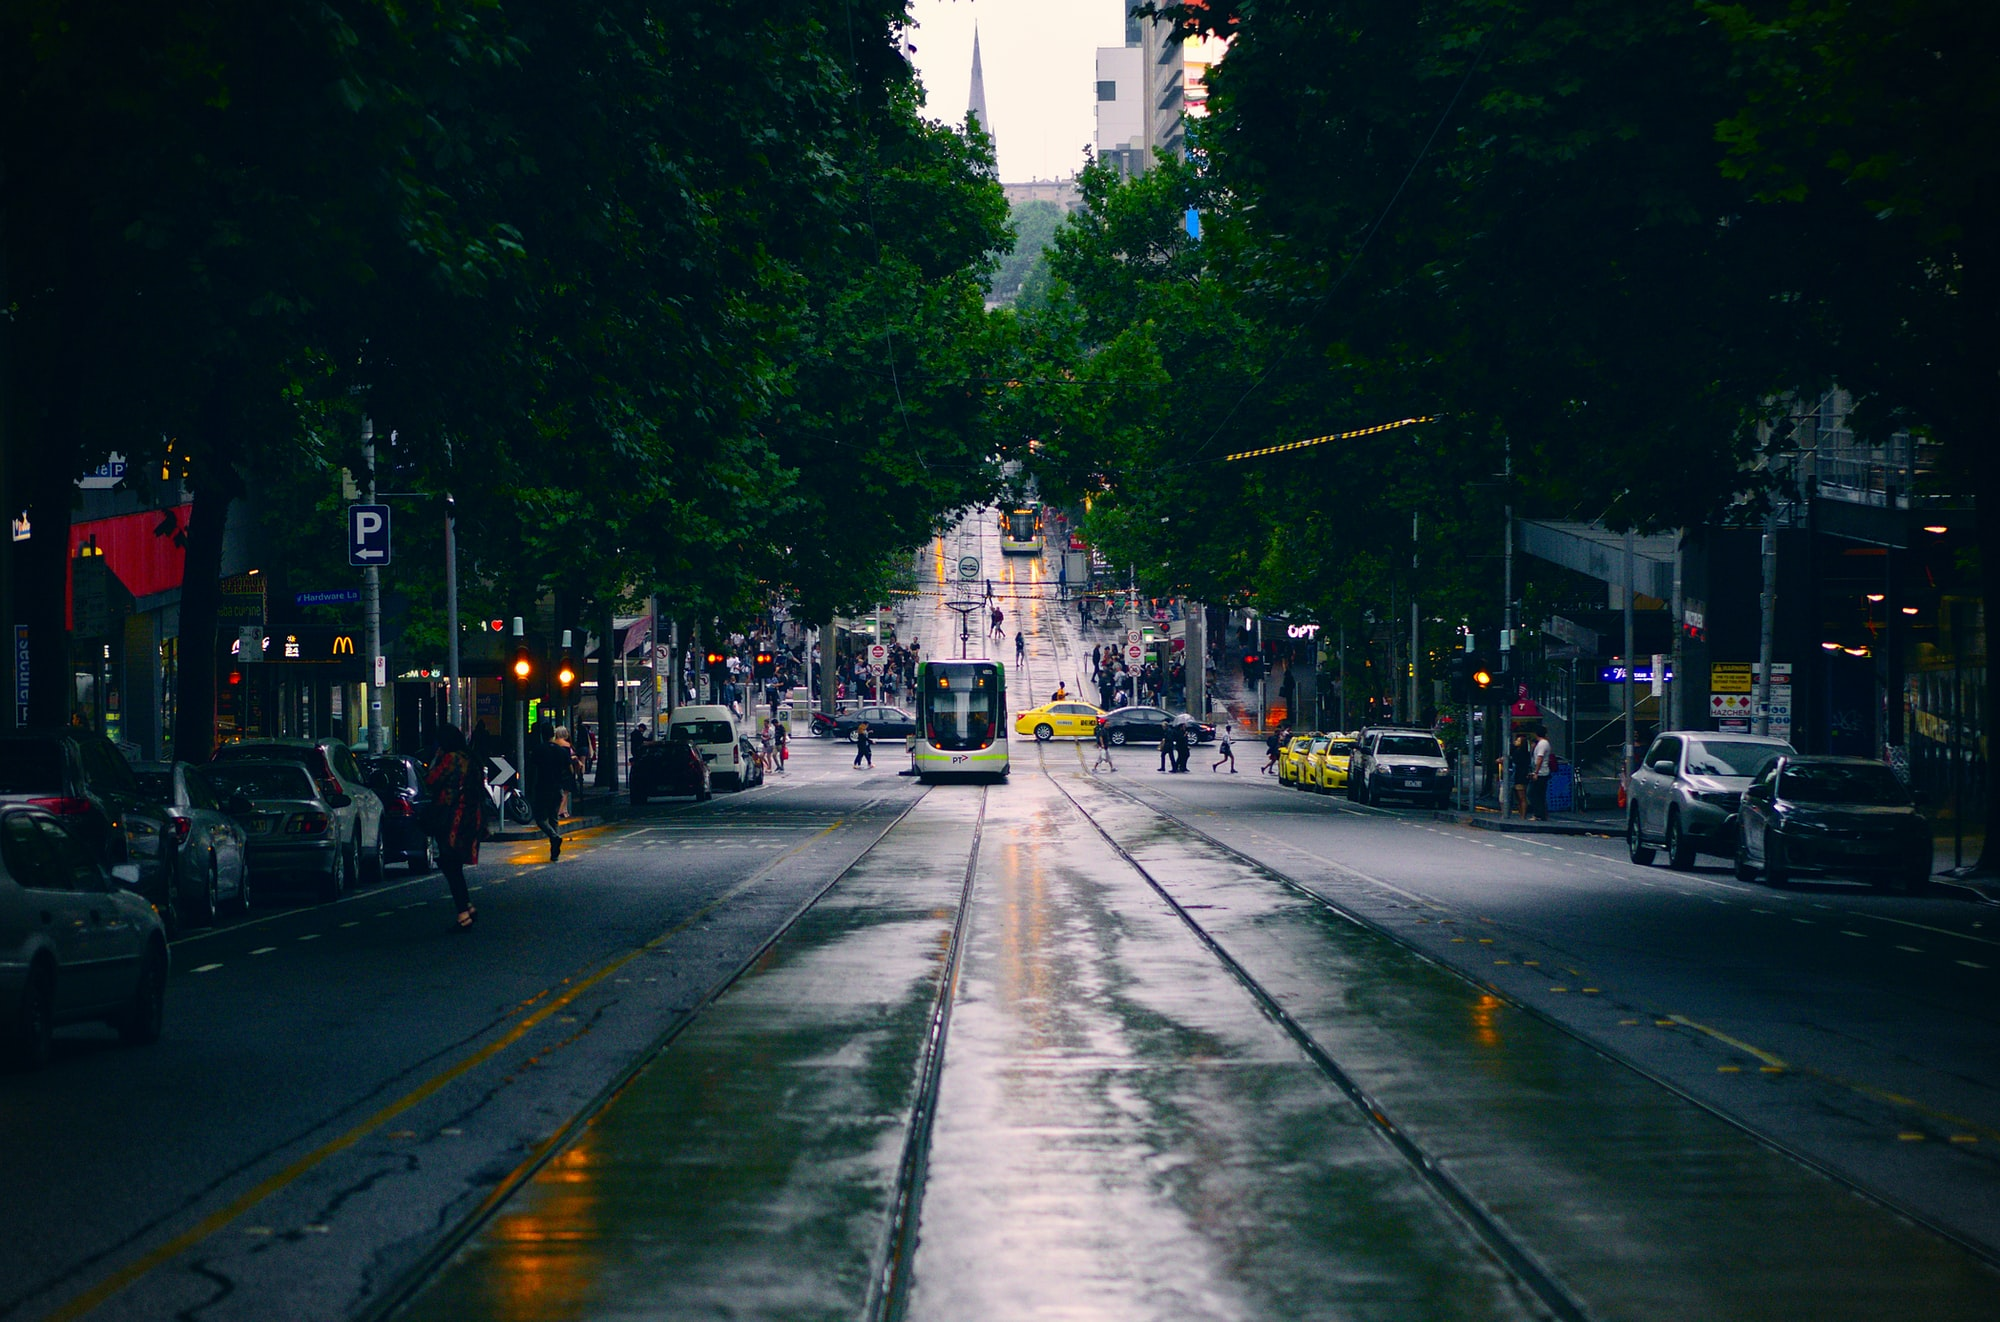 Car Share in Melbourne: A User's Guide